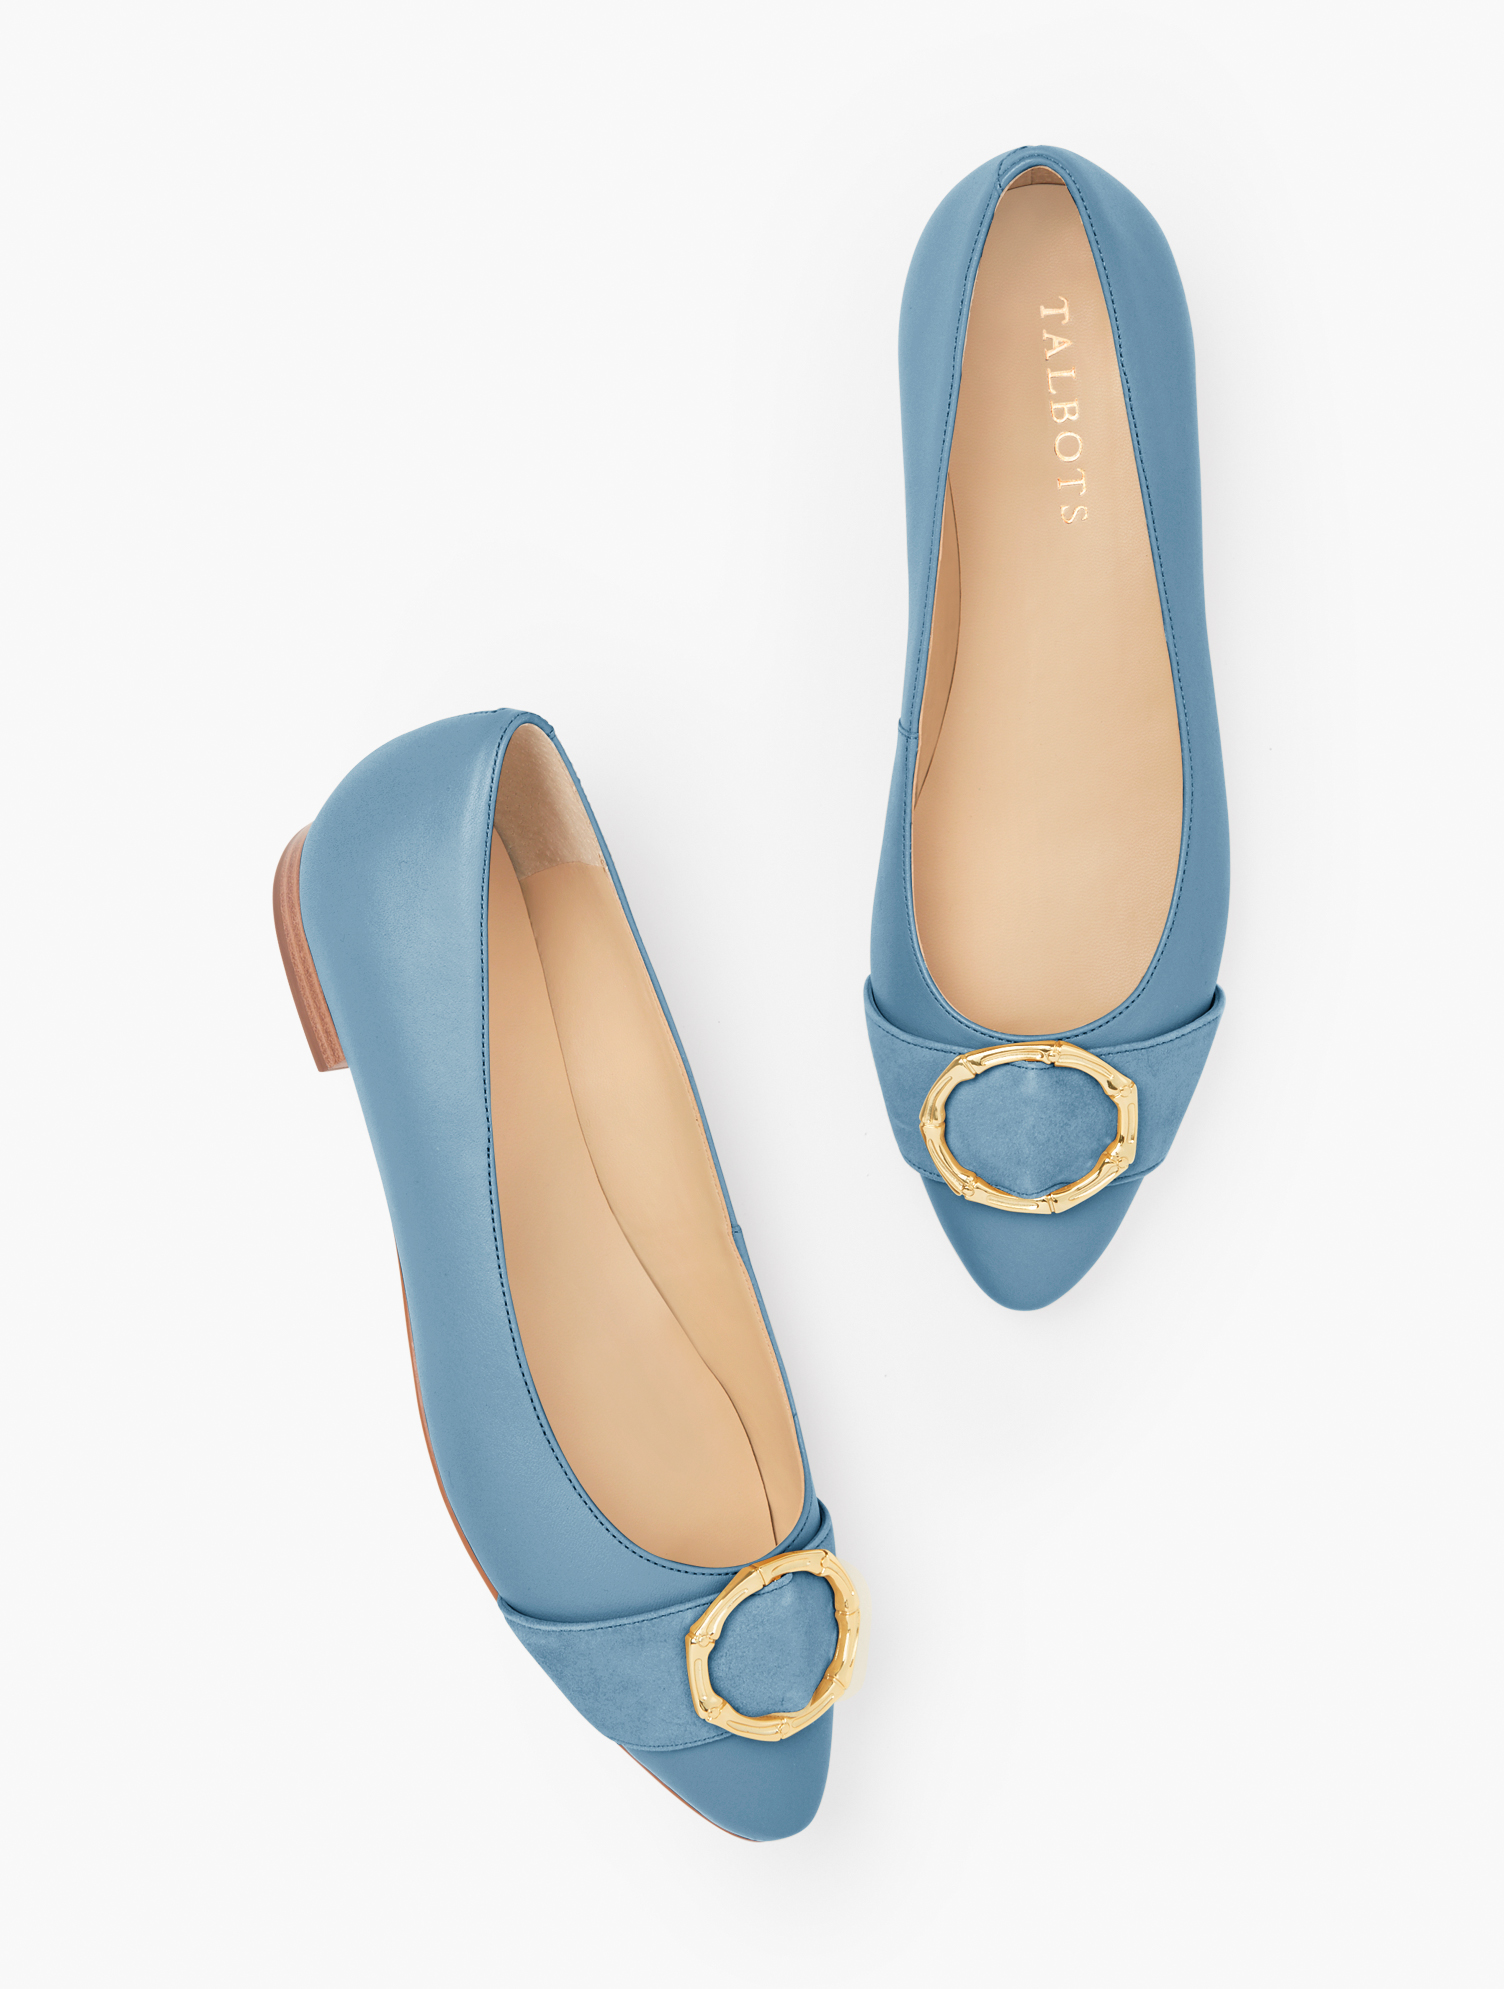 Vintage Shoes, Vintage Style Shoes Edison Bamboo Ring Nappa Flats - Blue Blossom - 11M Talbots $129.00 AT vintagedancer.com